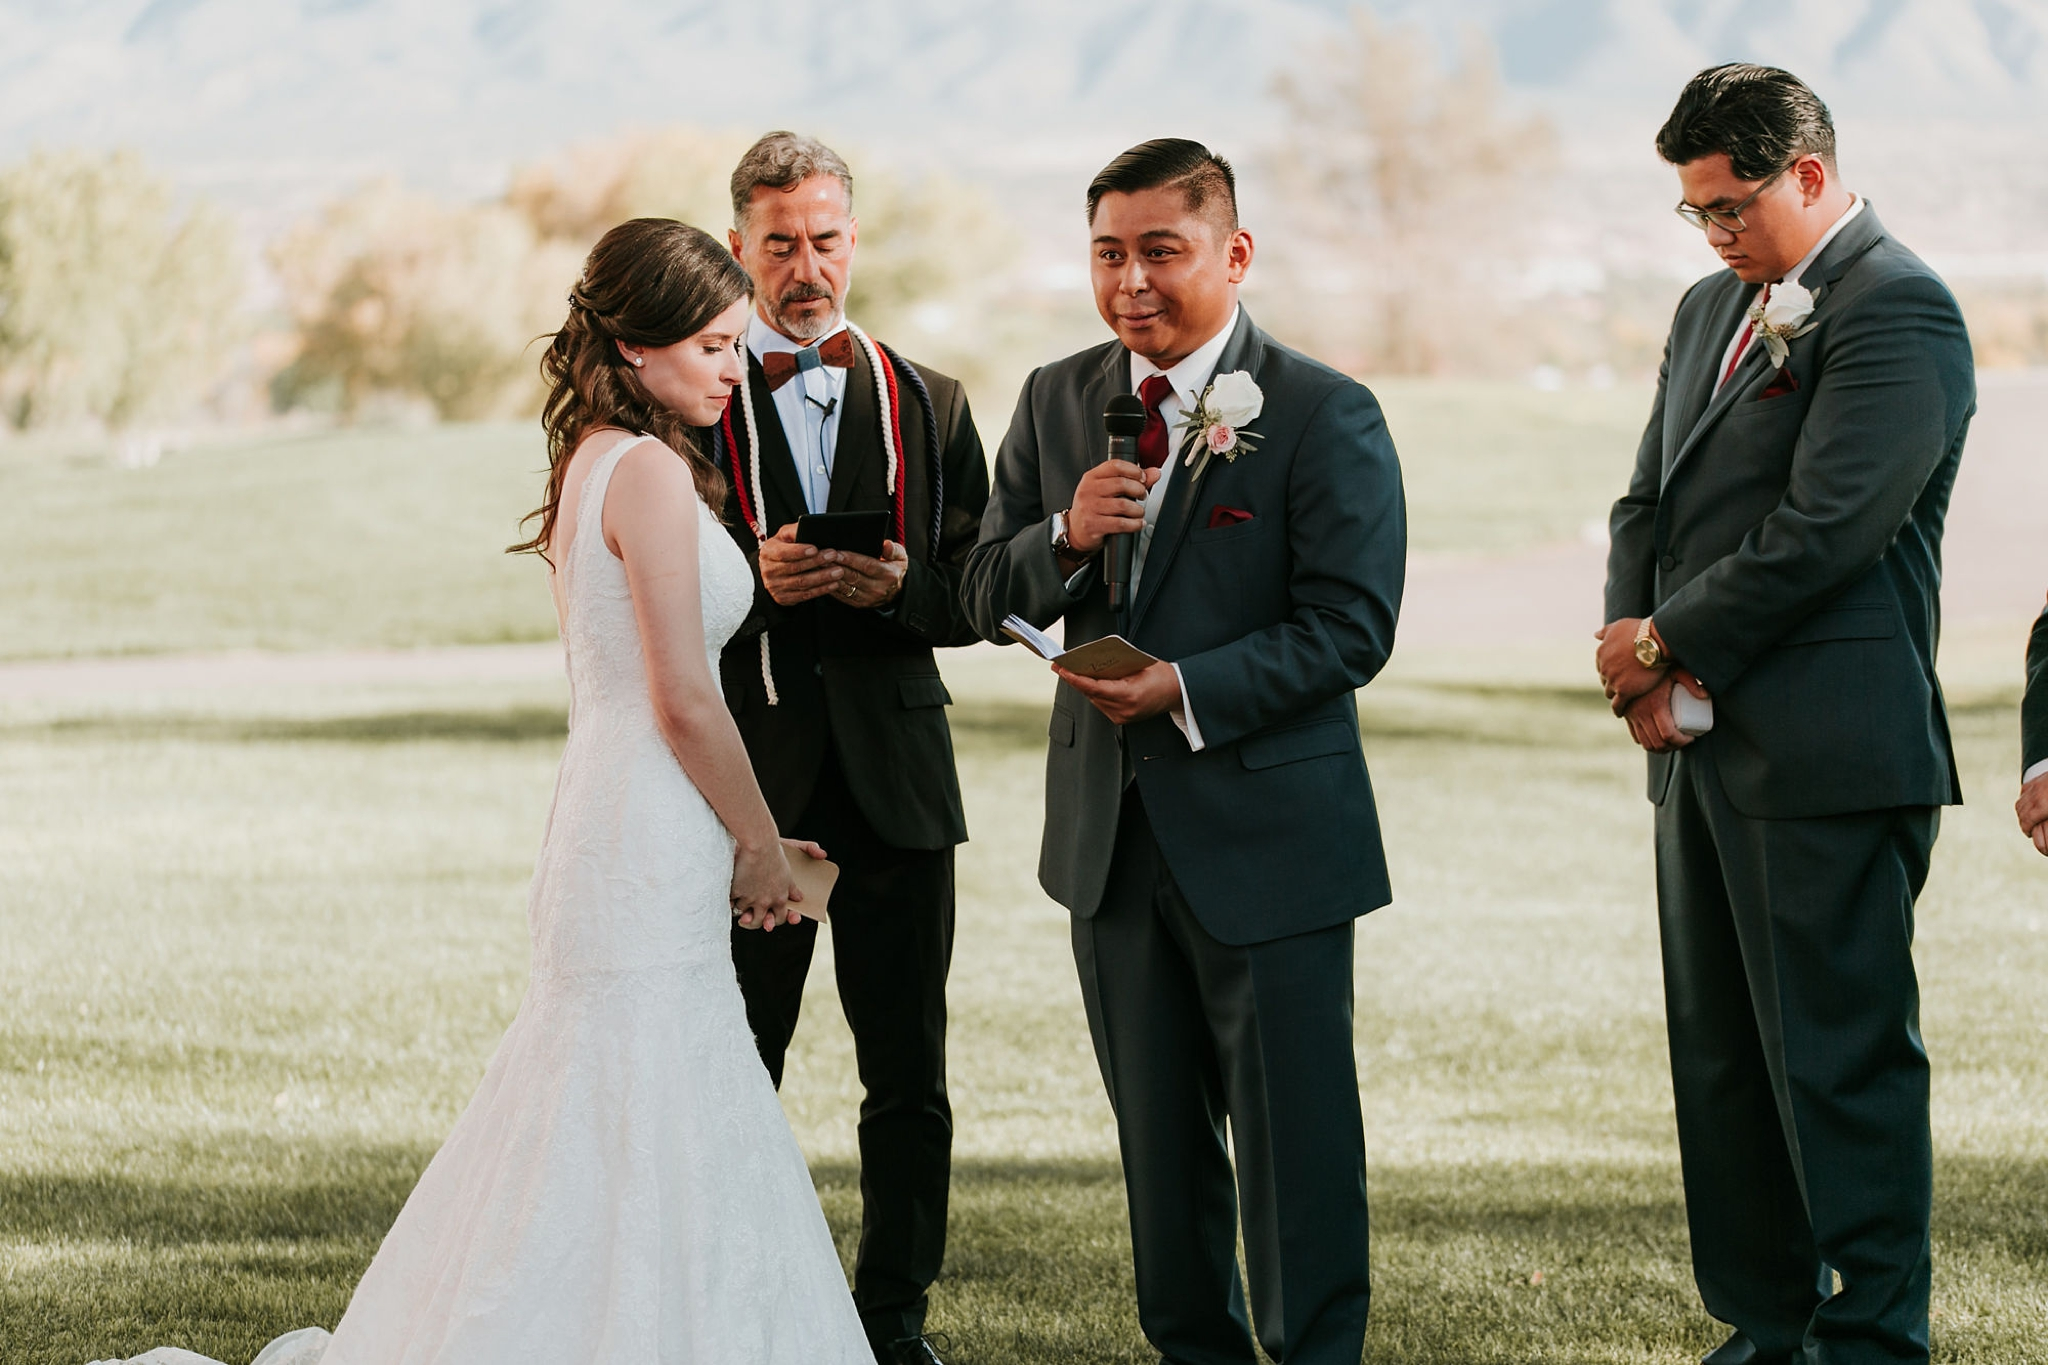 Alicia+lucia+photography+-+albuquerque+wedding+photographer+-+santa+fe+wedding+photography+-+new+mexico+wedding+photographer+-+new+mexico+wedding+-+wedding+vows+-+writing+your+own+vows+-+wedding+inspo_0006.jpg